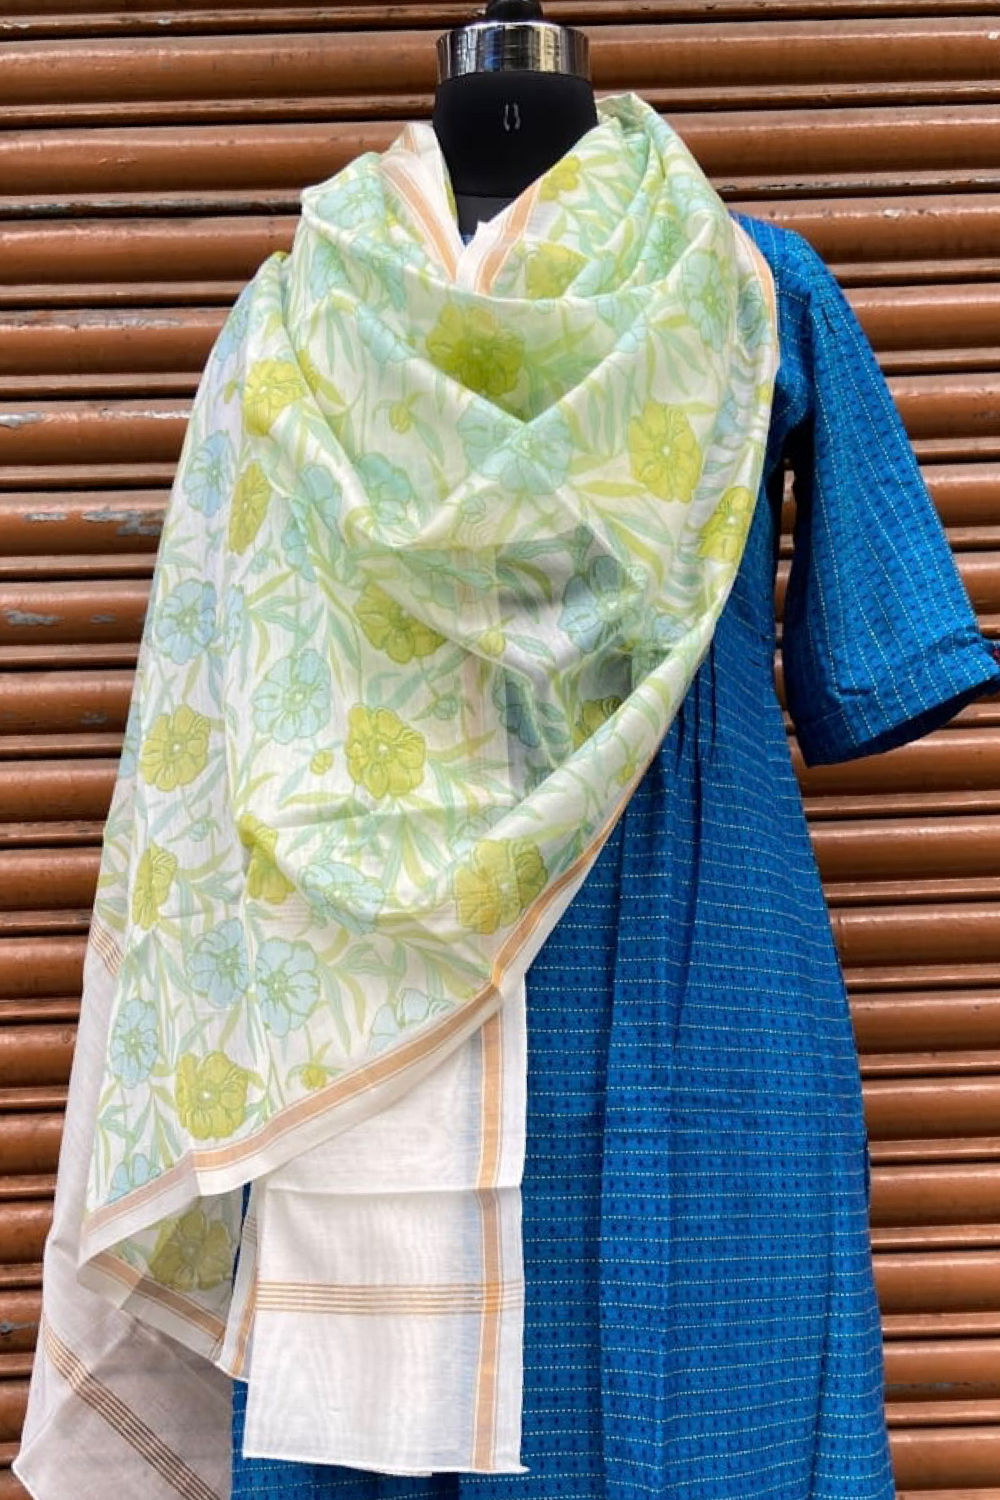 handwoven chanderi dupatta -  meadow's dawn & blue poppy